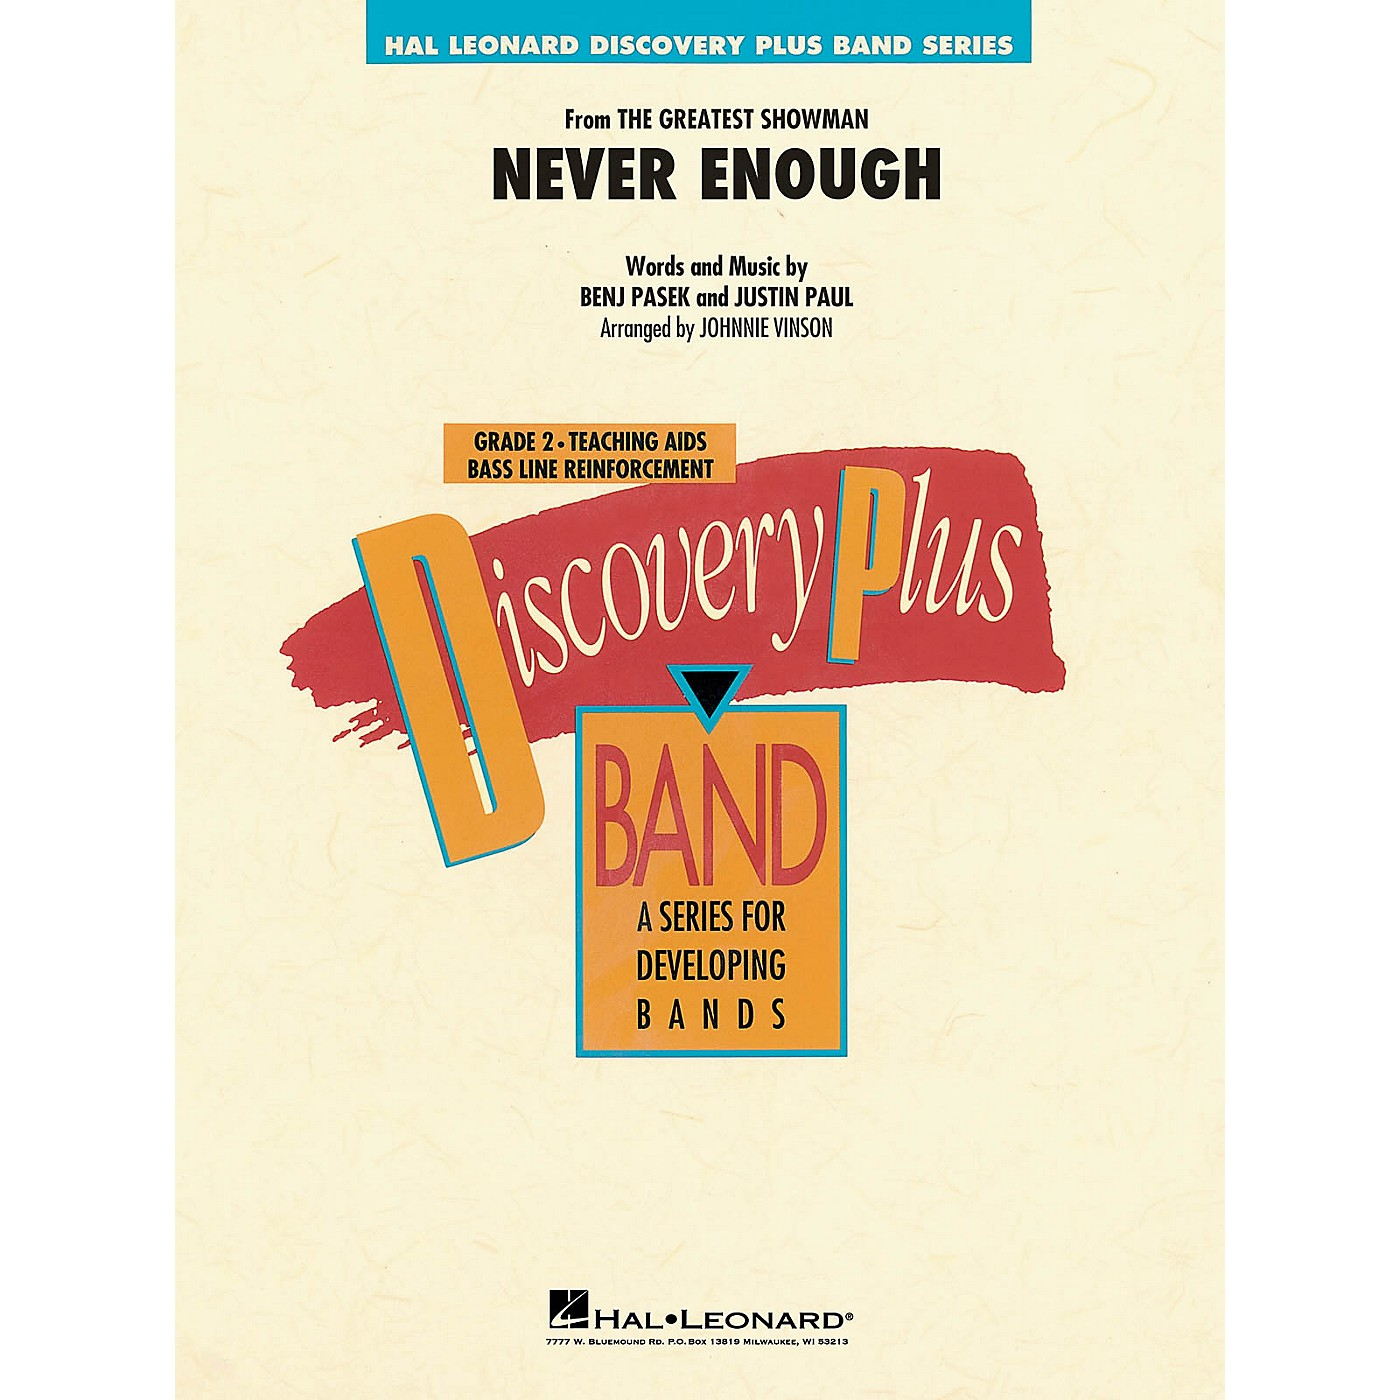 Hal Leonard Never Enough (from The Greatest Showman) Discovery Plus Concert Band Level 2 Arranged by Johnnie Vinson thumbnail